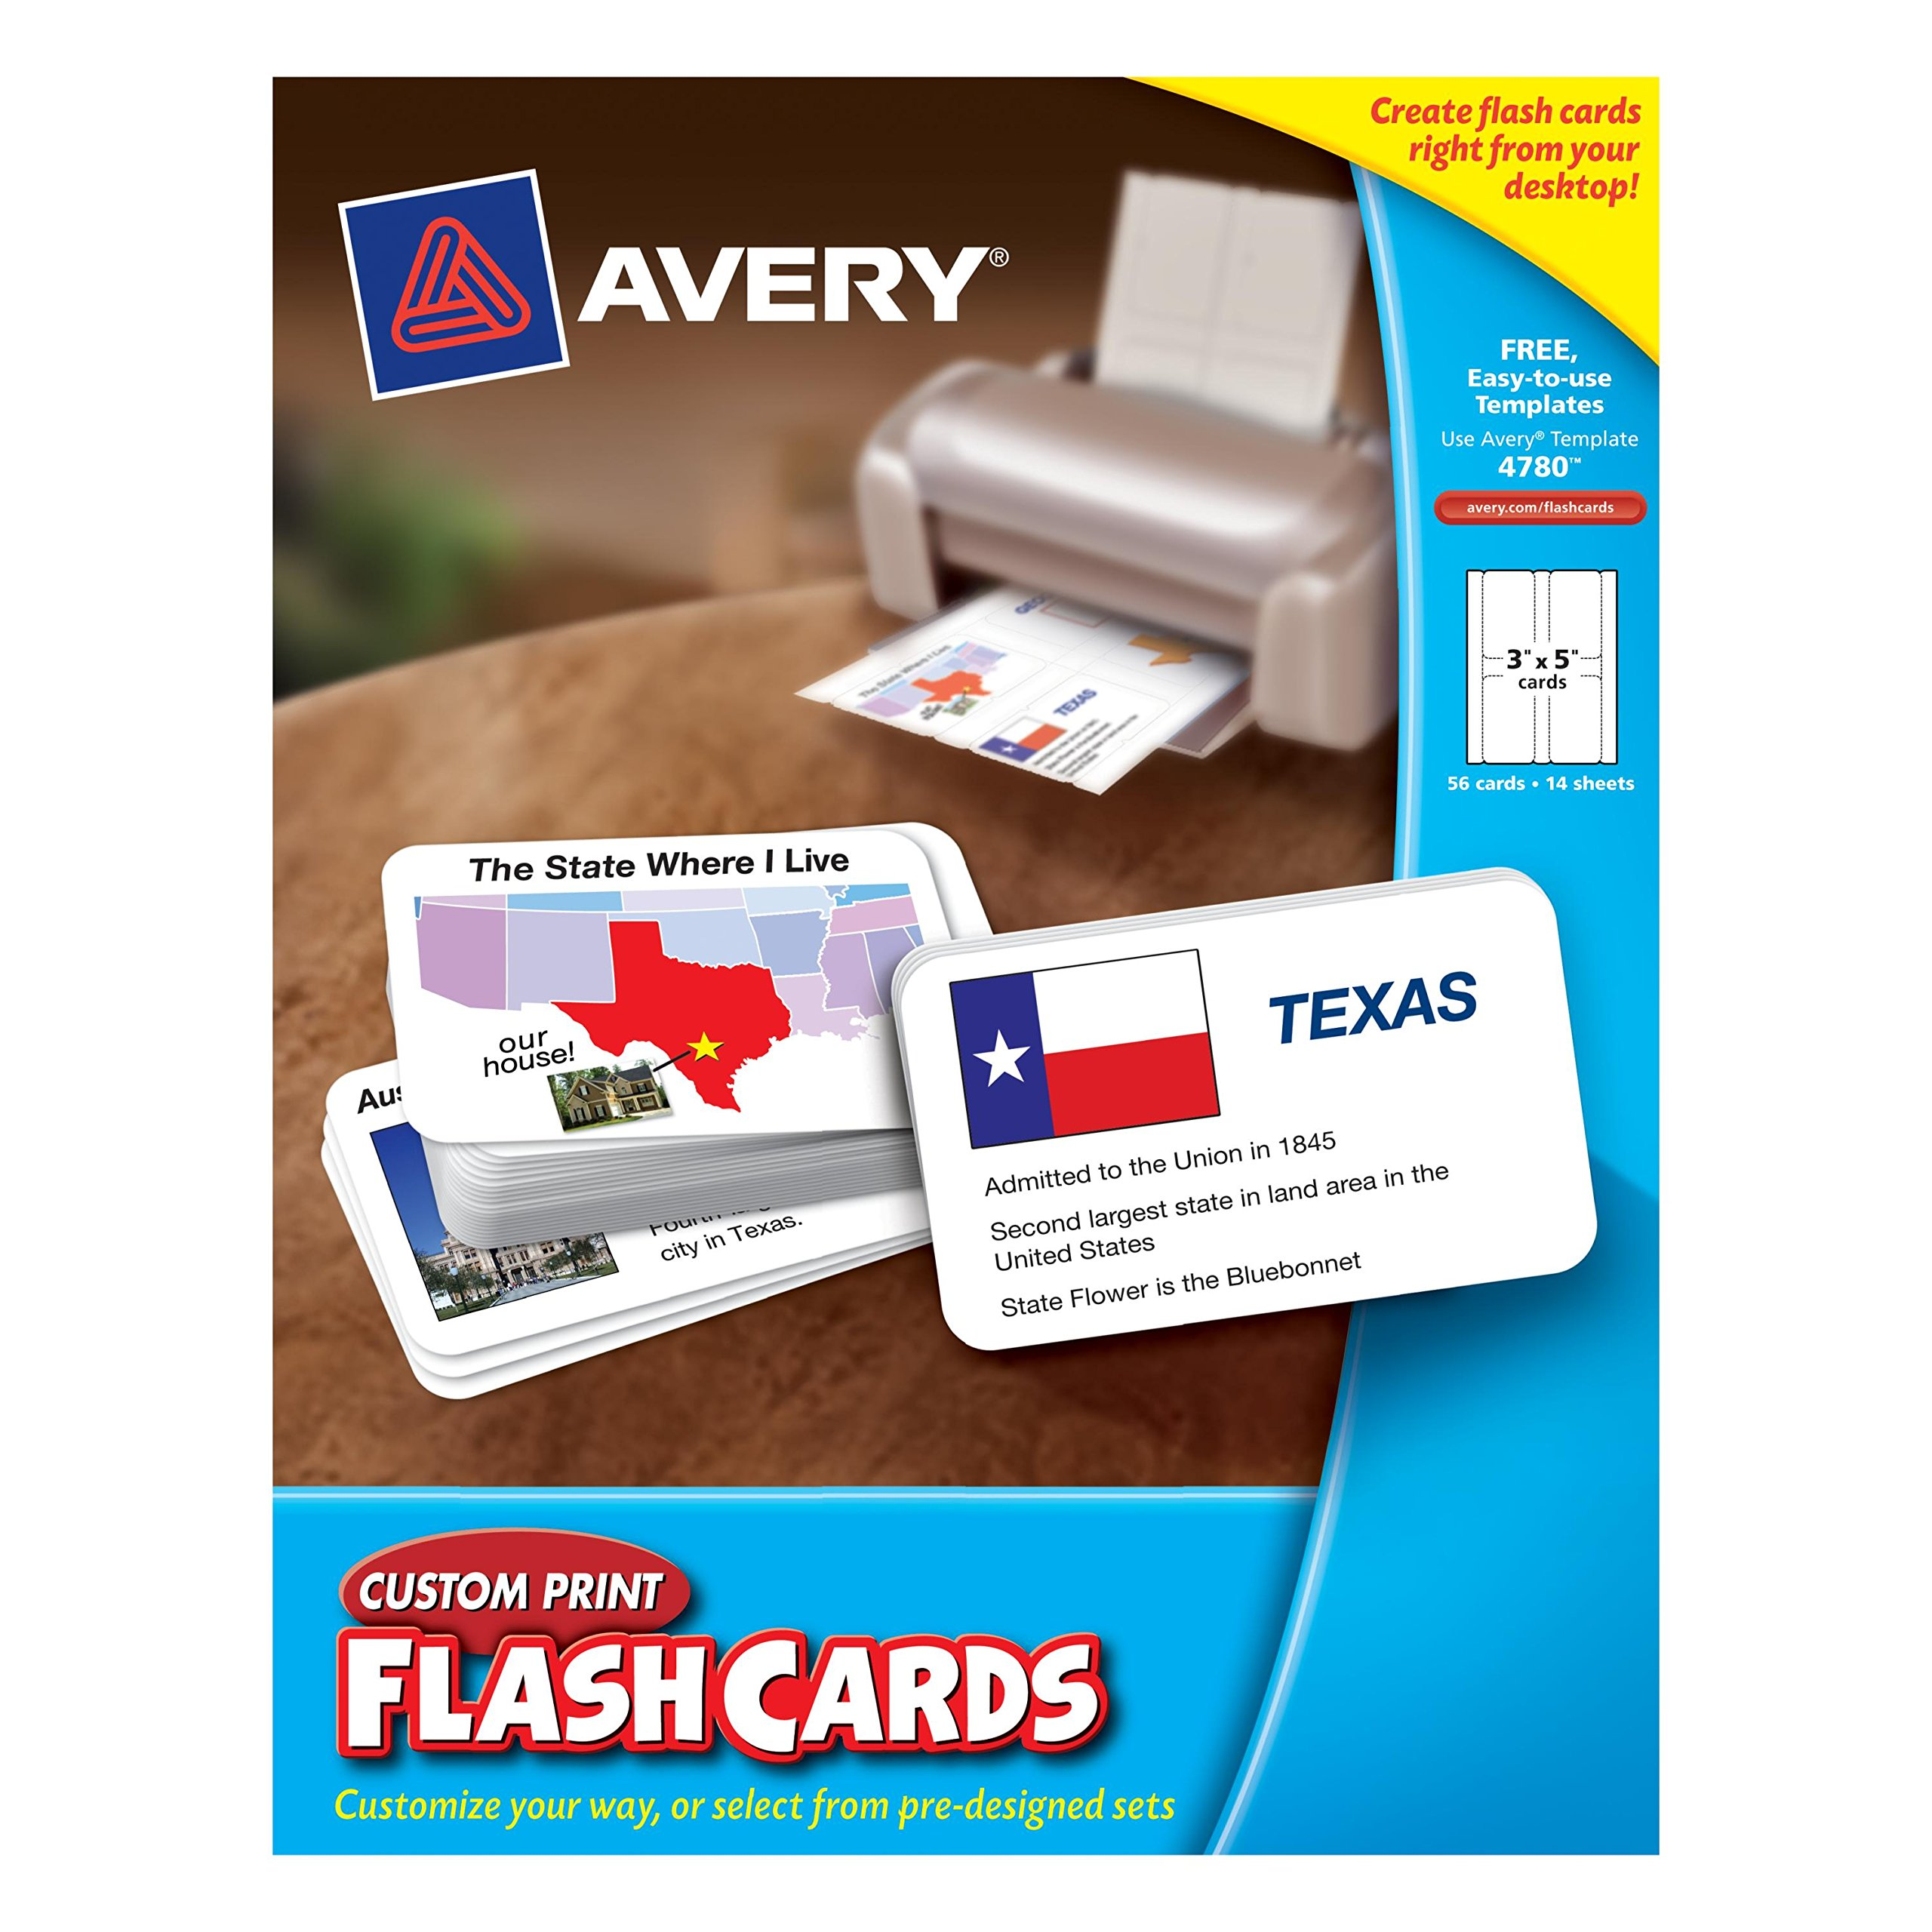 Avery Custom Print Flash Cards 3 x 5 Inches (04780) by Avery (Image #1)